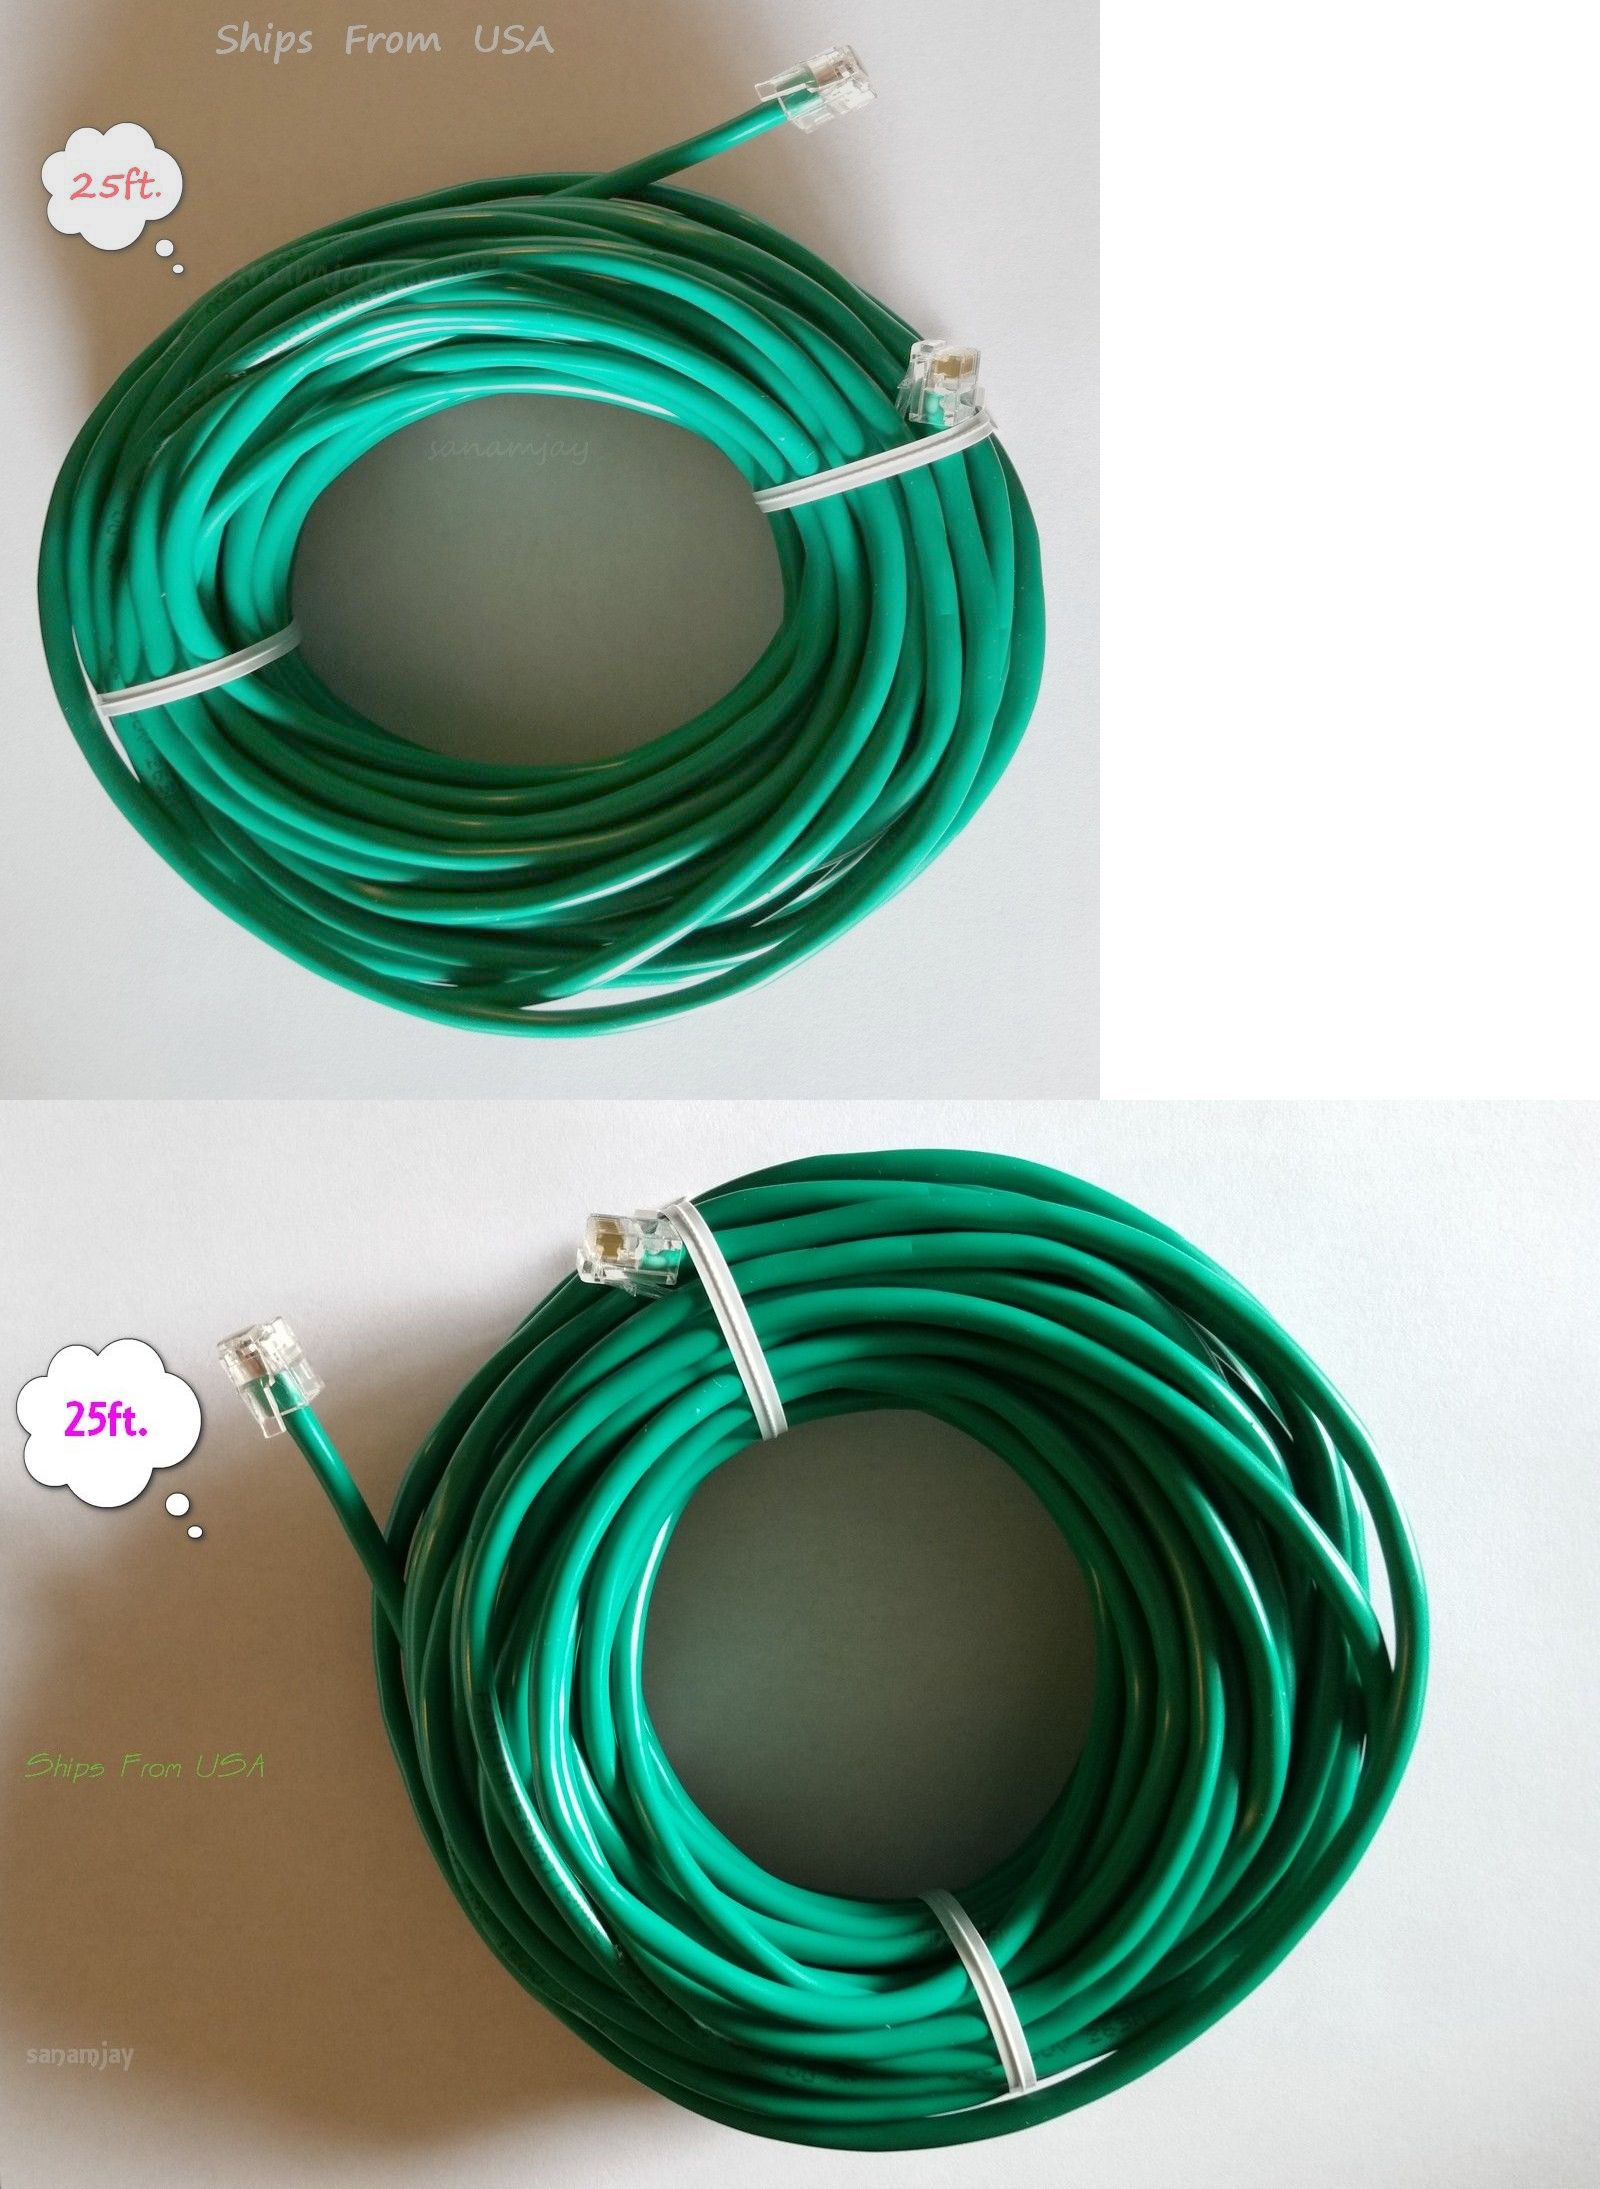 dsl phone cables rj-11 67857: 25ft  rj11 rj12 cat5e green dsl telephone  data cable for centurylink, atandt, etc -> buy it now only: $11 99 on #ebay  #phone